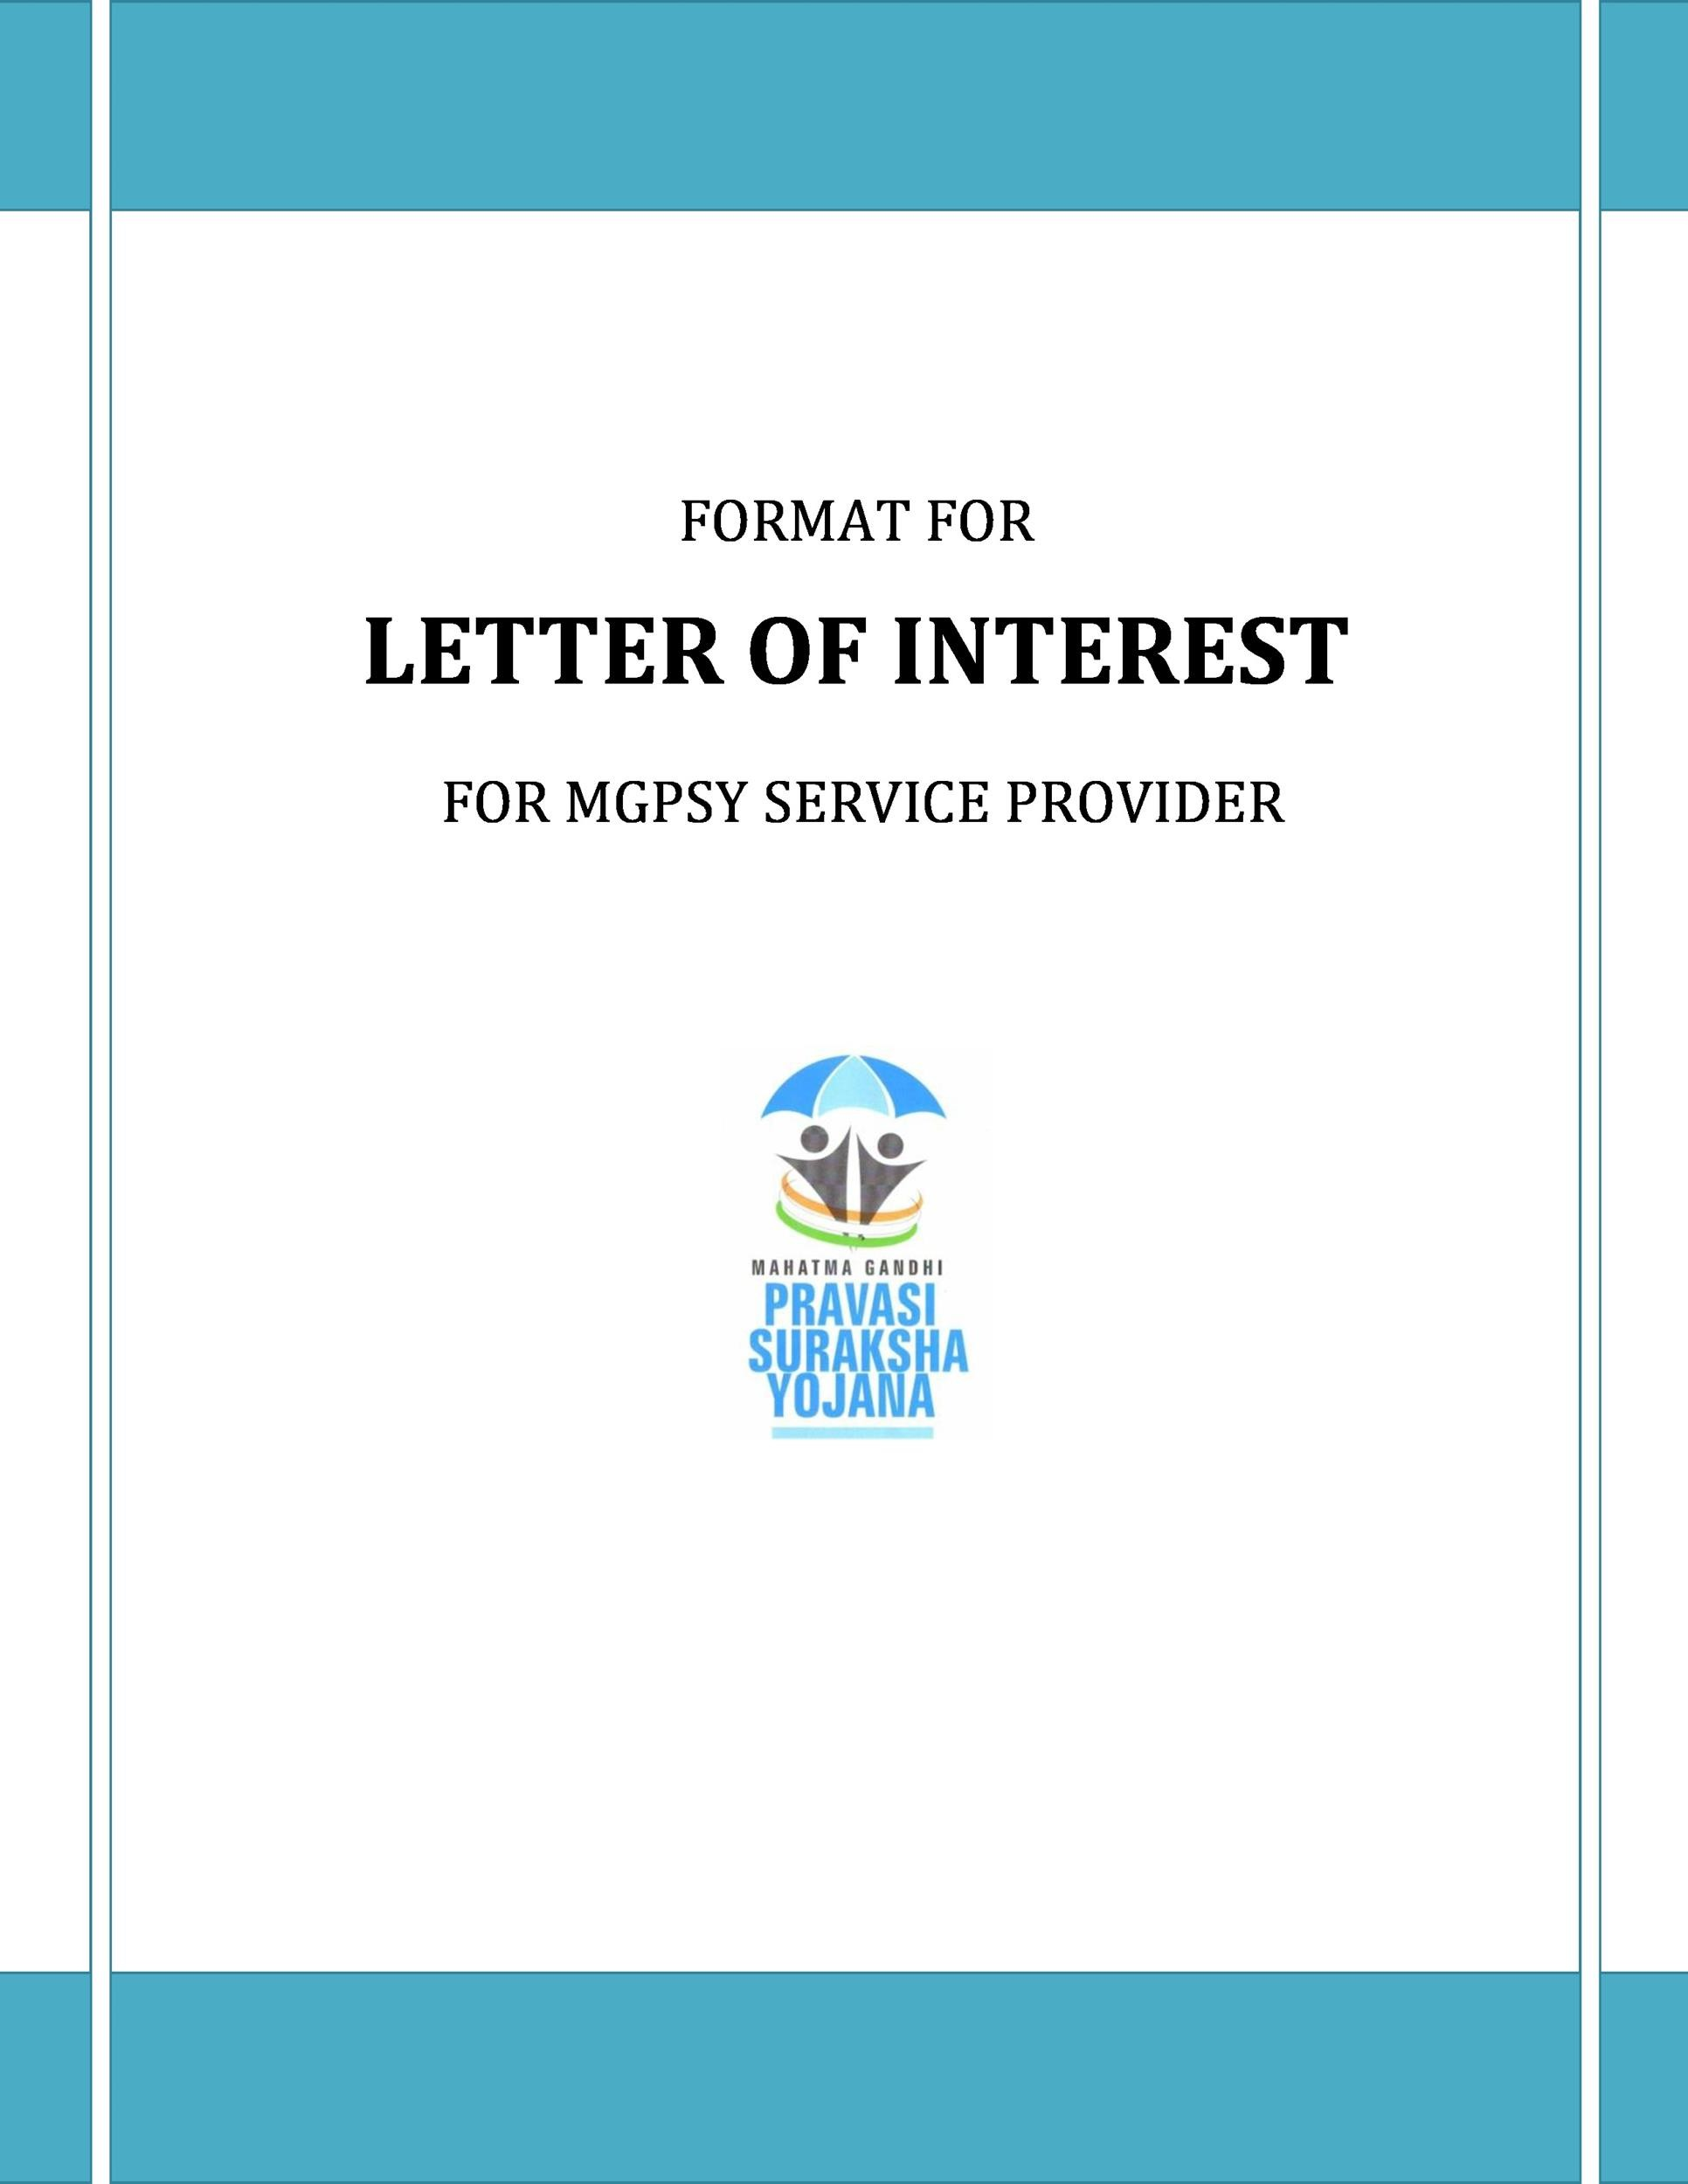 sending a letter to someone 30 amazing letter of interest samples amp templates 20866 | letter of interest 19